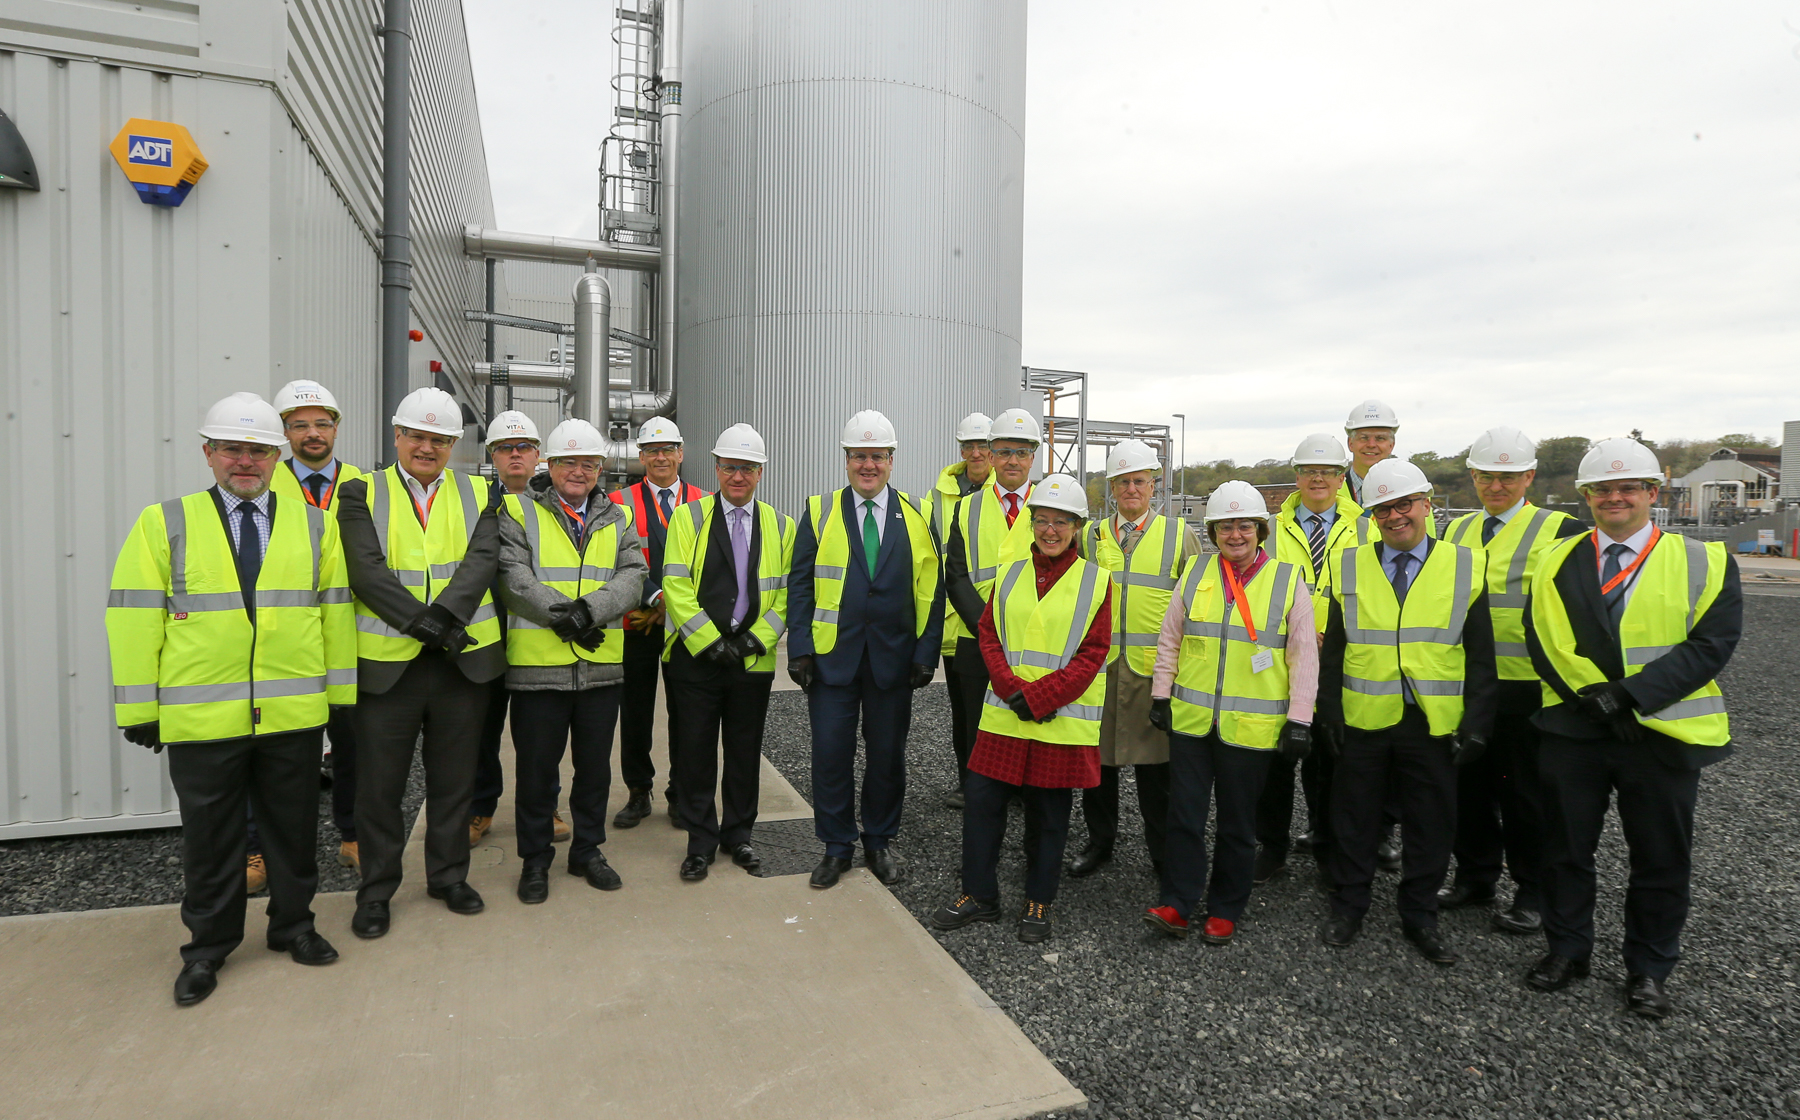 £24 million Glenrothes Heating District Opened